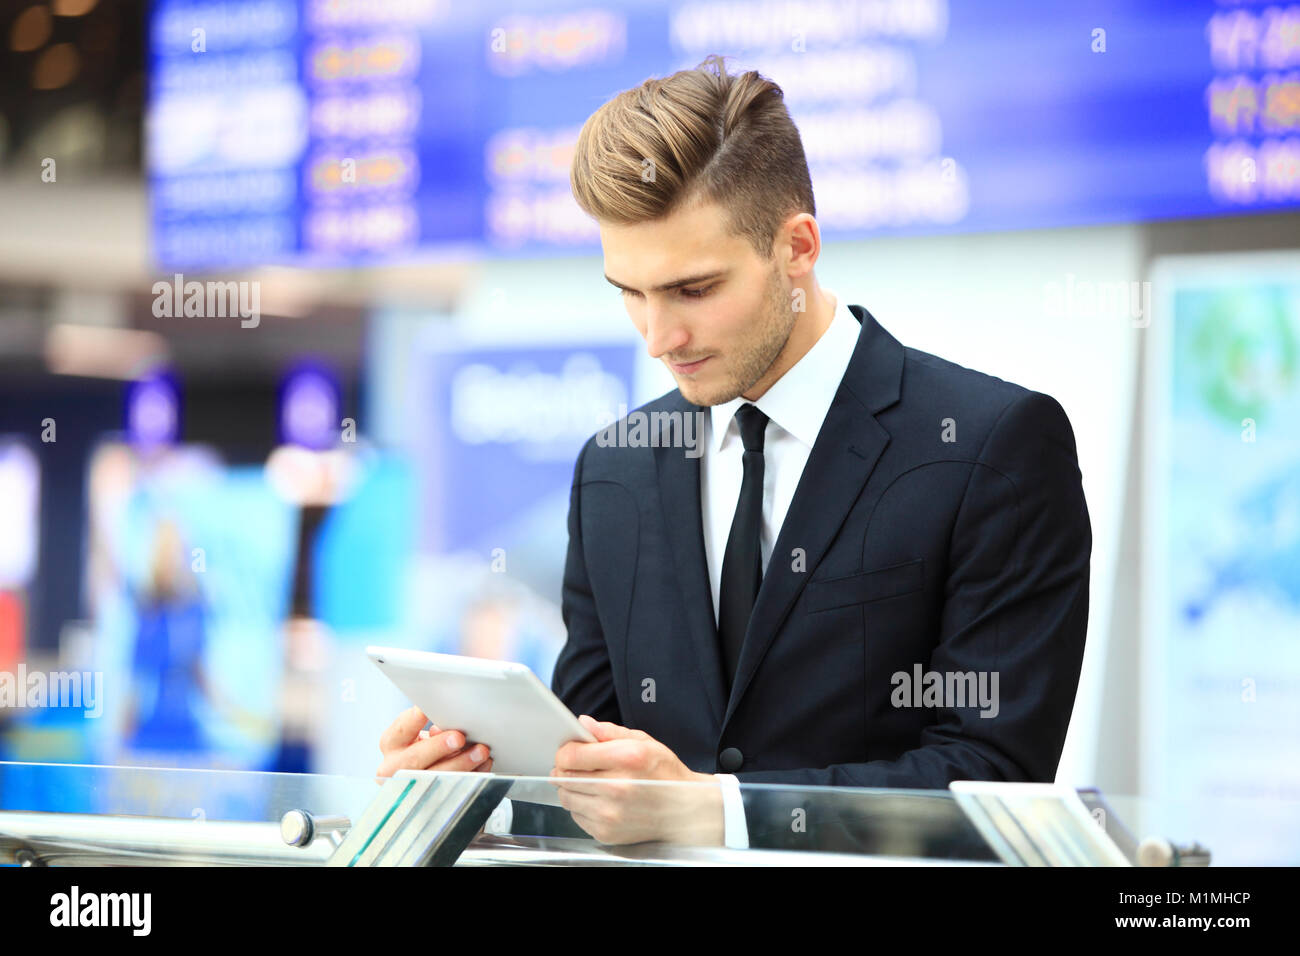 Businessman Using Digital Tablet In Airport Departure Lounge - Stock Image